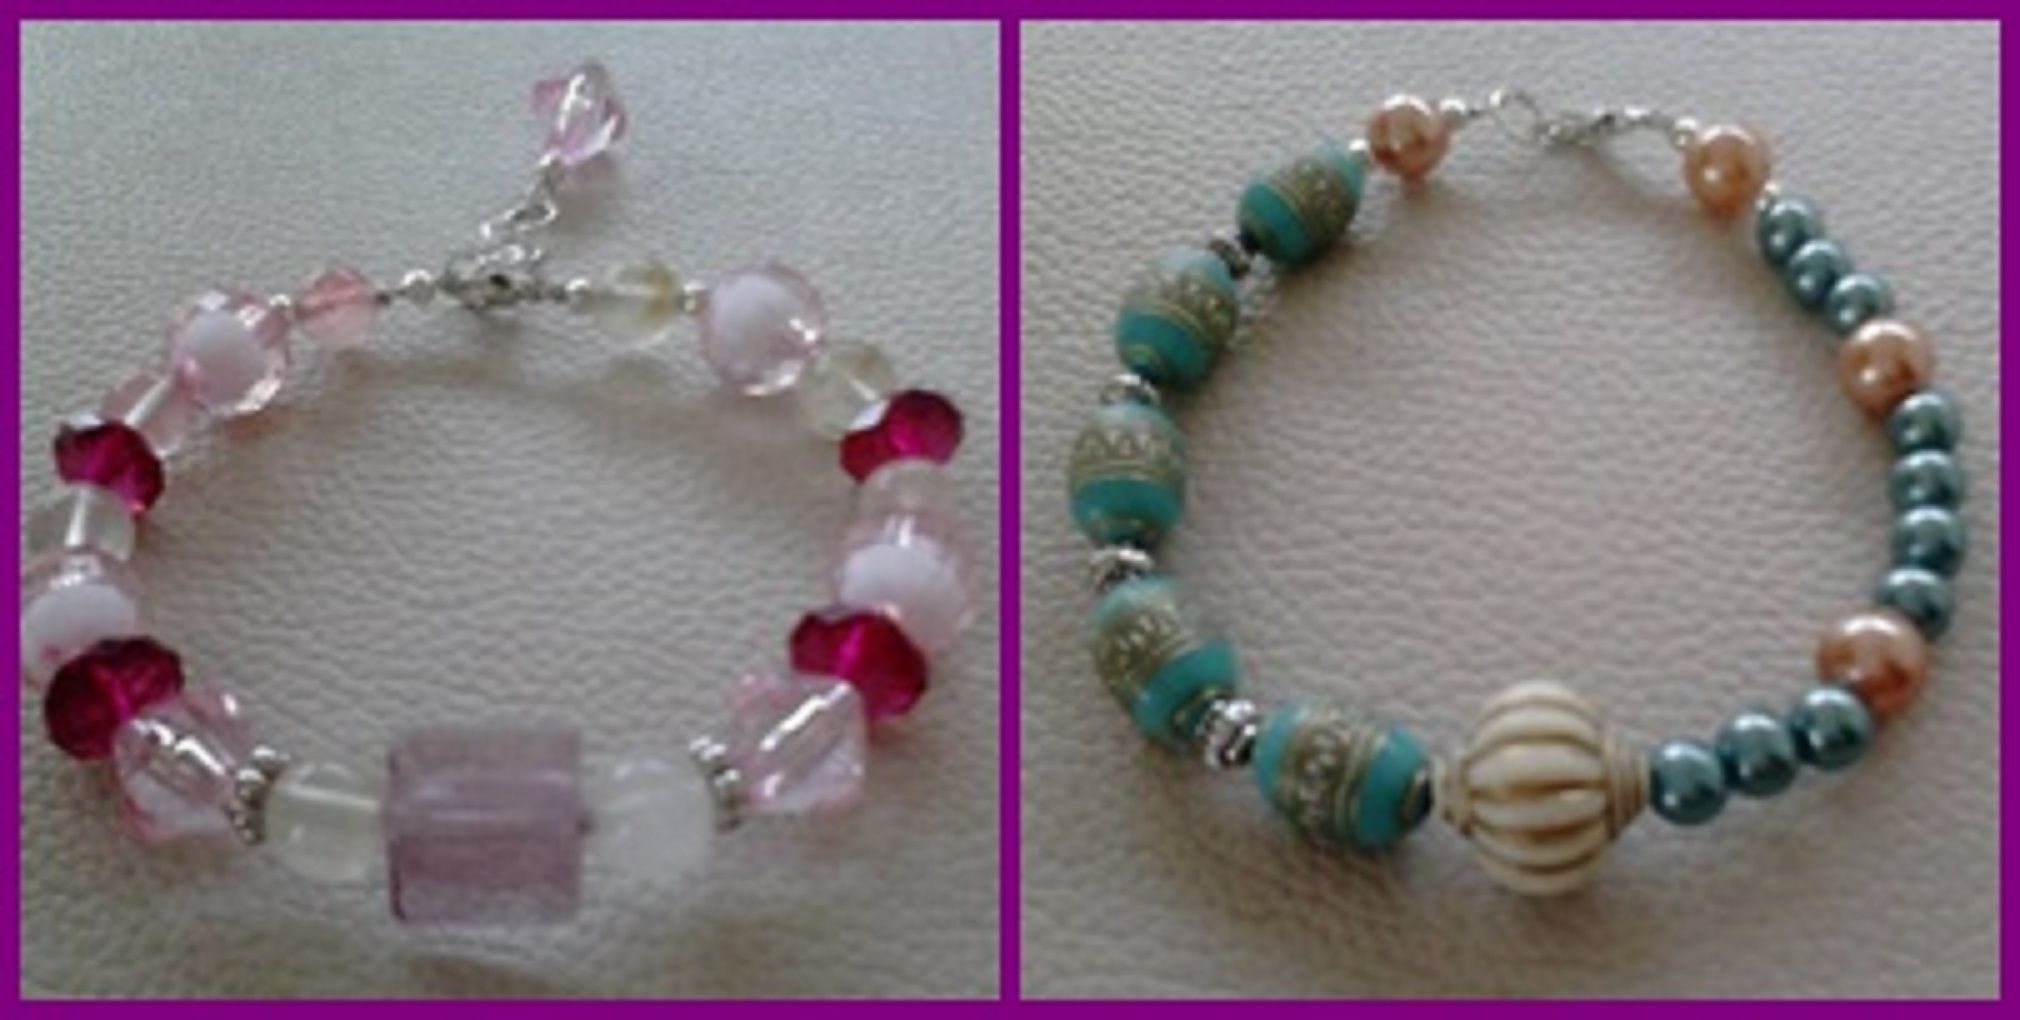 My handmade fashion bracelets